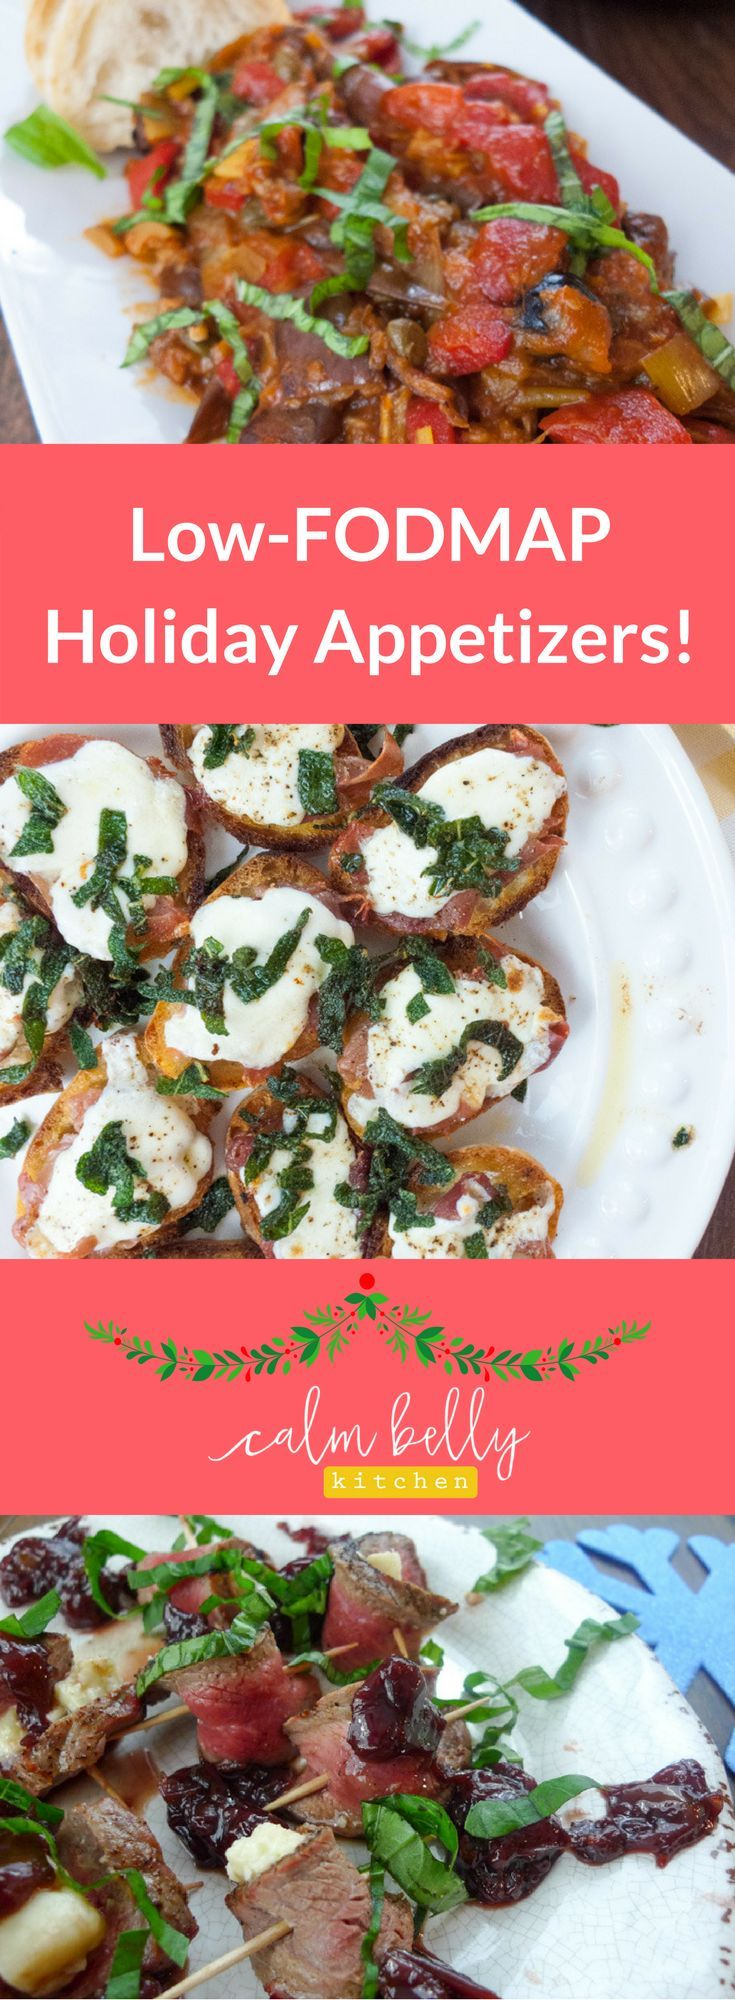 214 best images about [Low FODMAP] Snacks & Appetizers on Pinterest ...